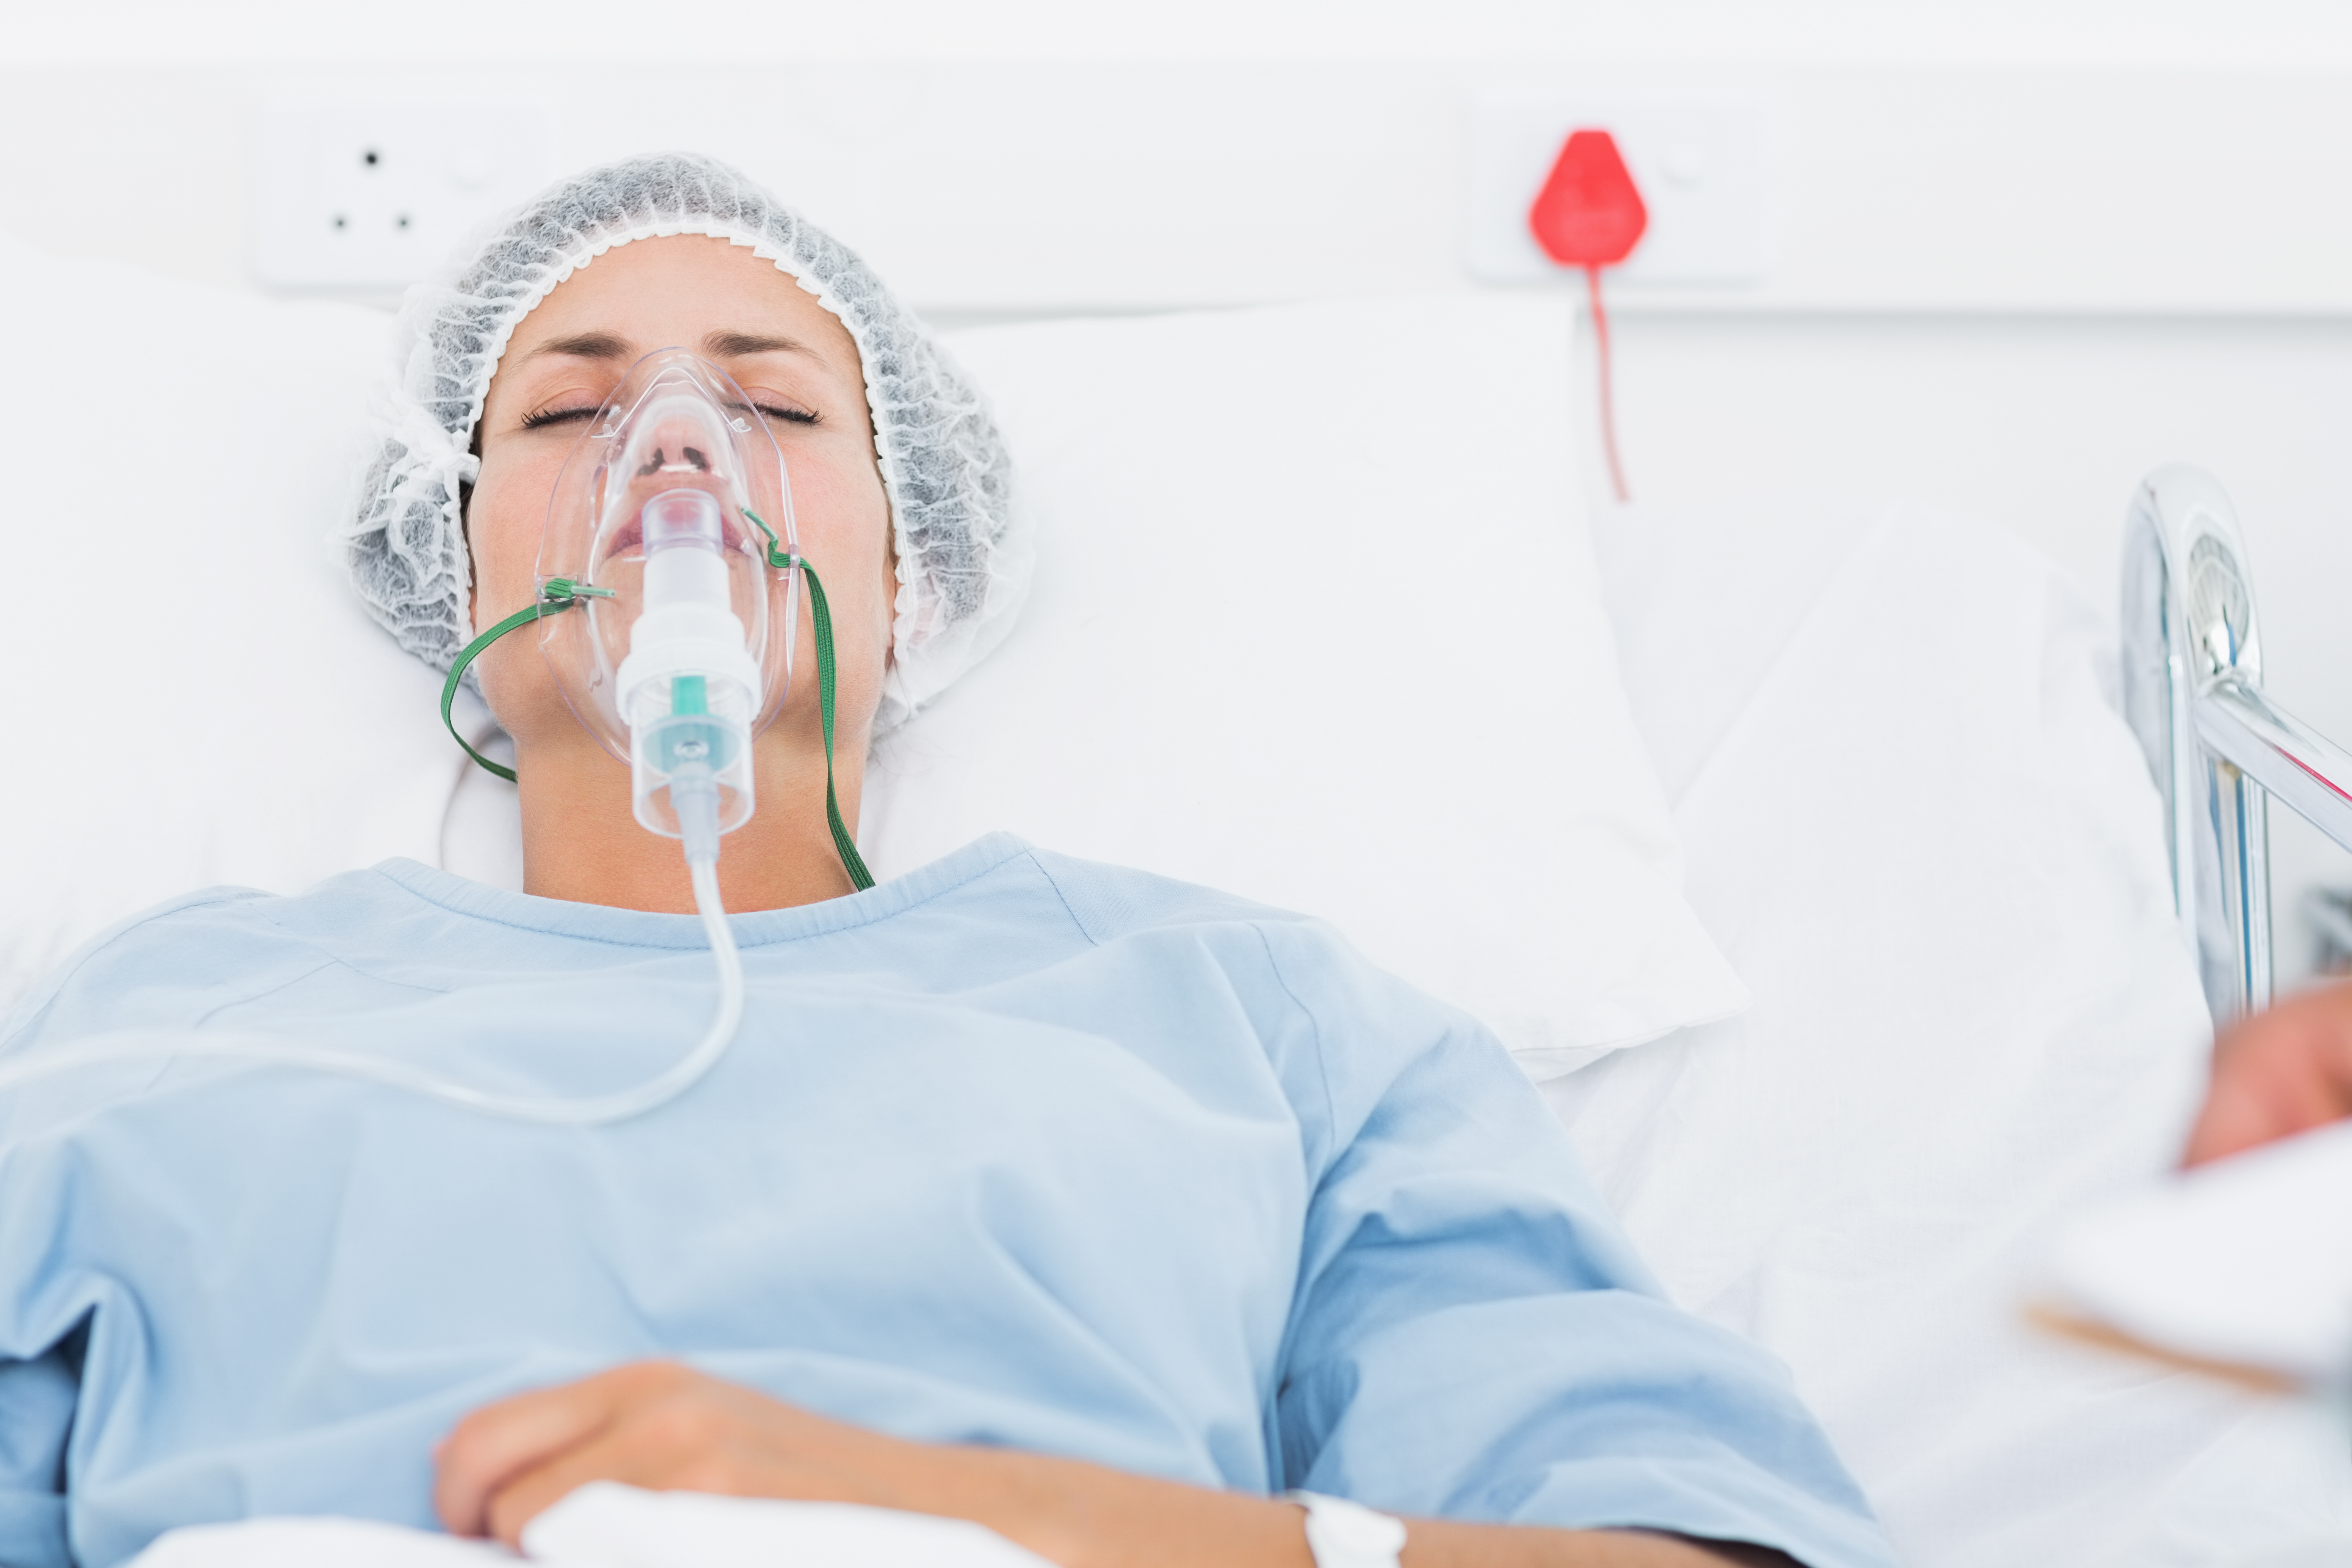 Researchers Examine COPD Patients' Use of Oxygen Therapy